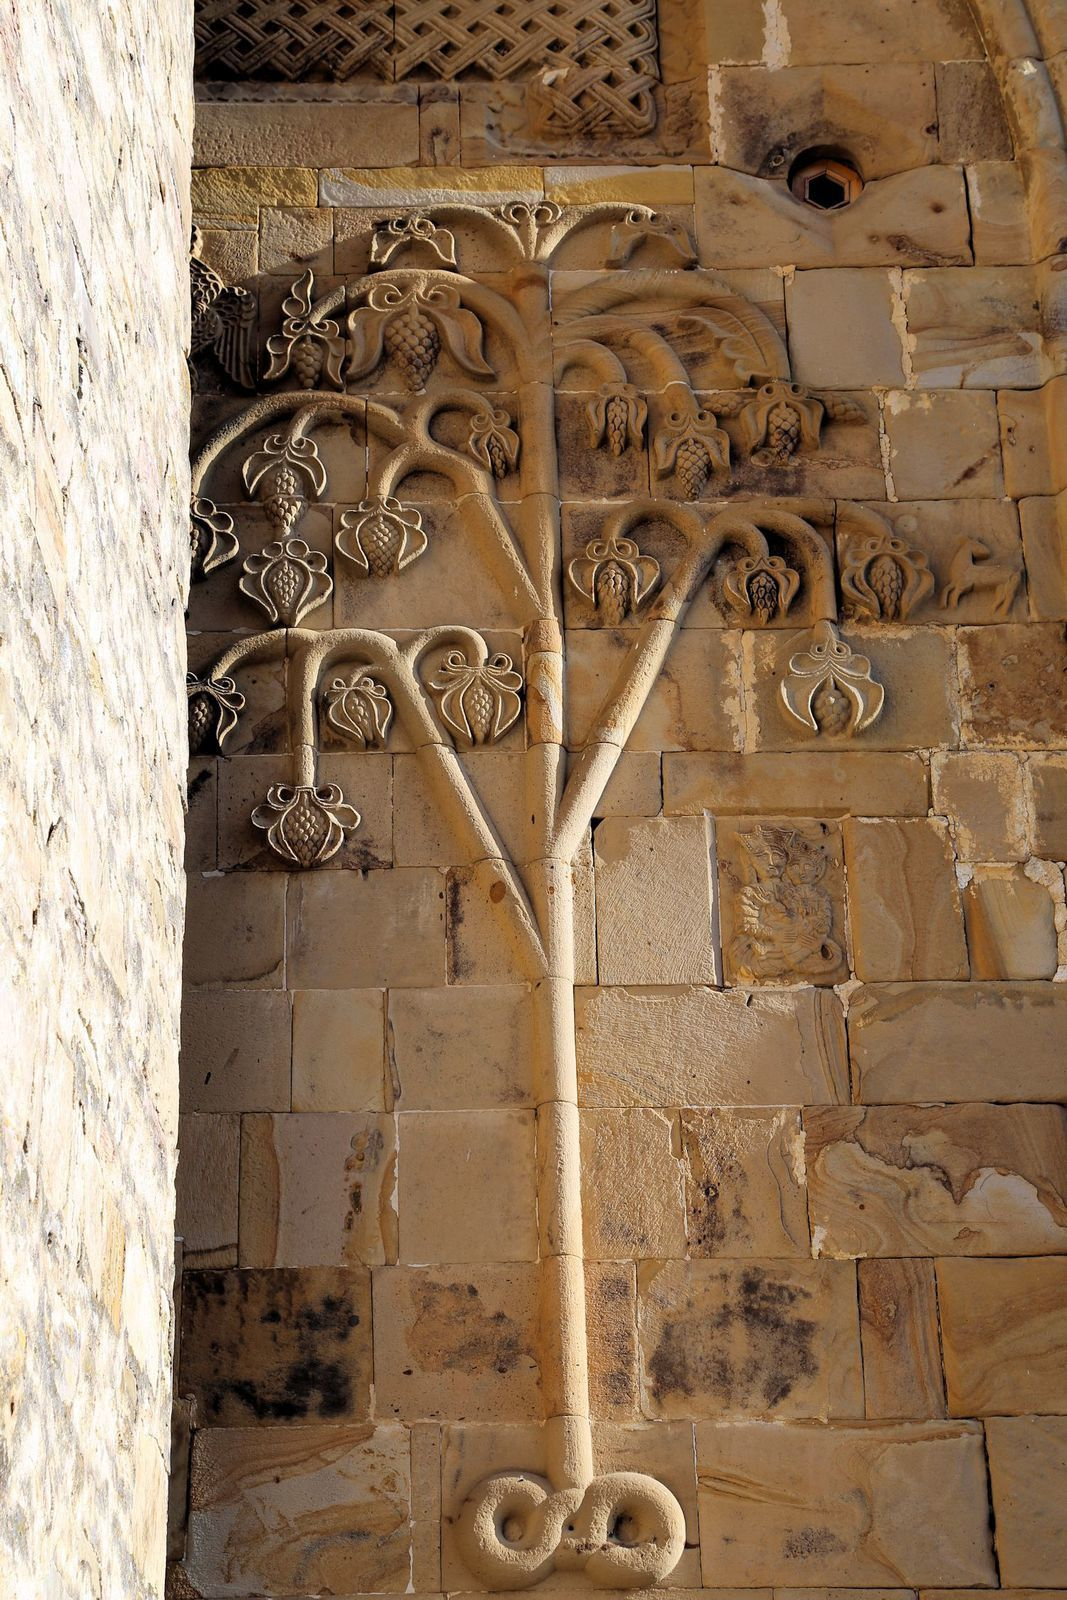 Decorations on the outer walls of the Church of the Assumption